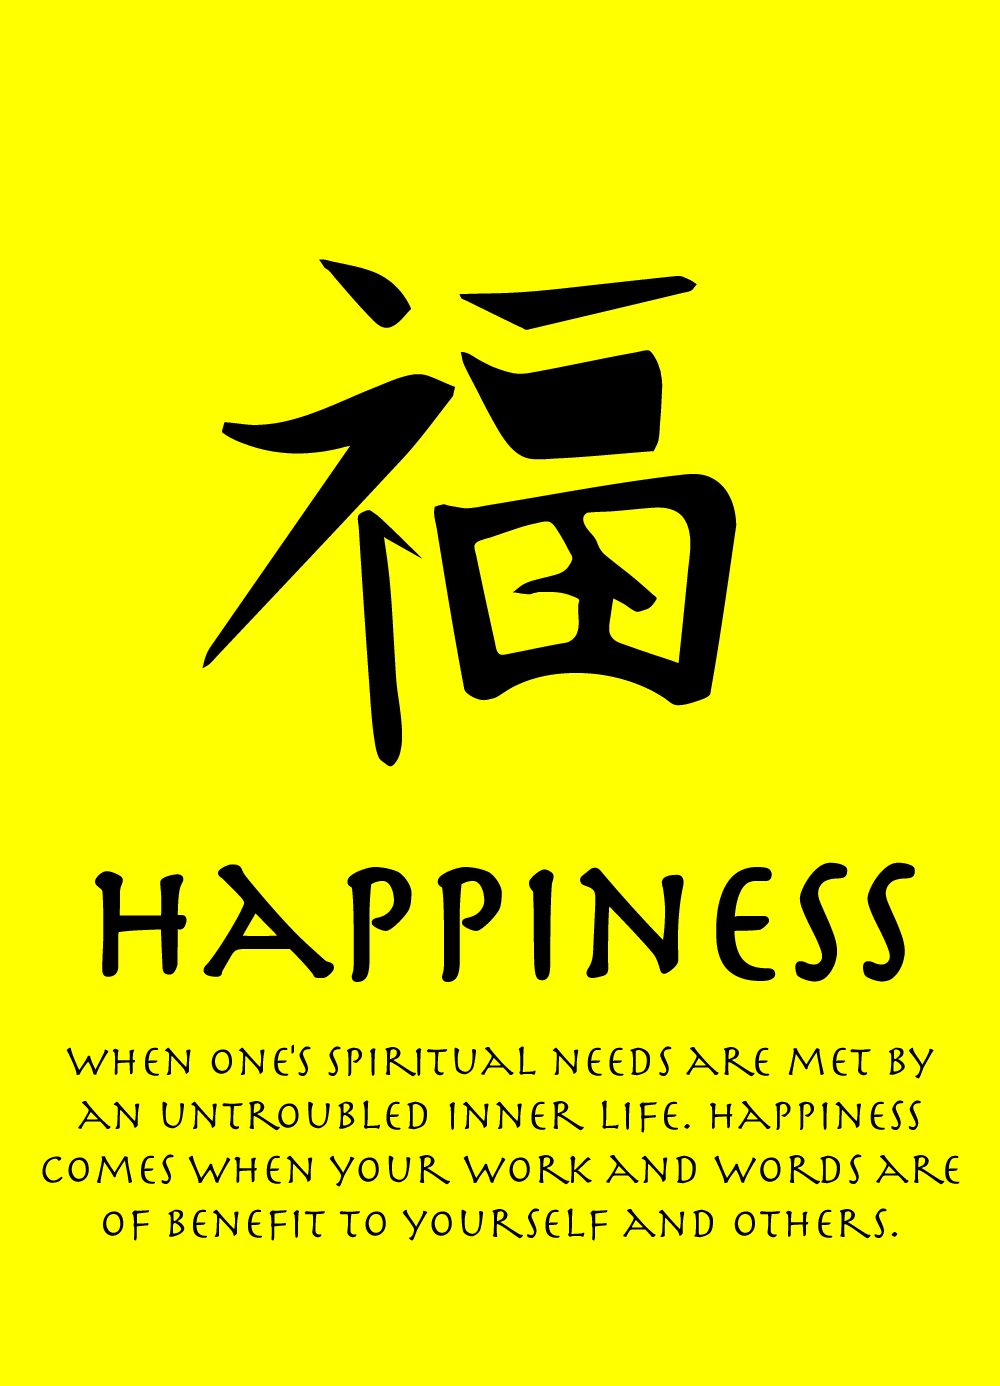 Happiness symbol and good fortune quote when ones spiritual happiness symbol and good fortune quote when ones spiritual needs are met by an untroubled inner life happiness comes when your work and words are of biocorpaavc Choice Image